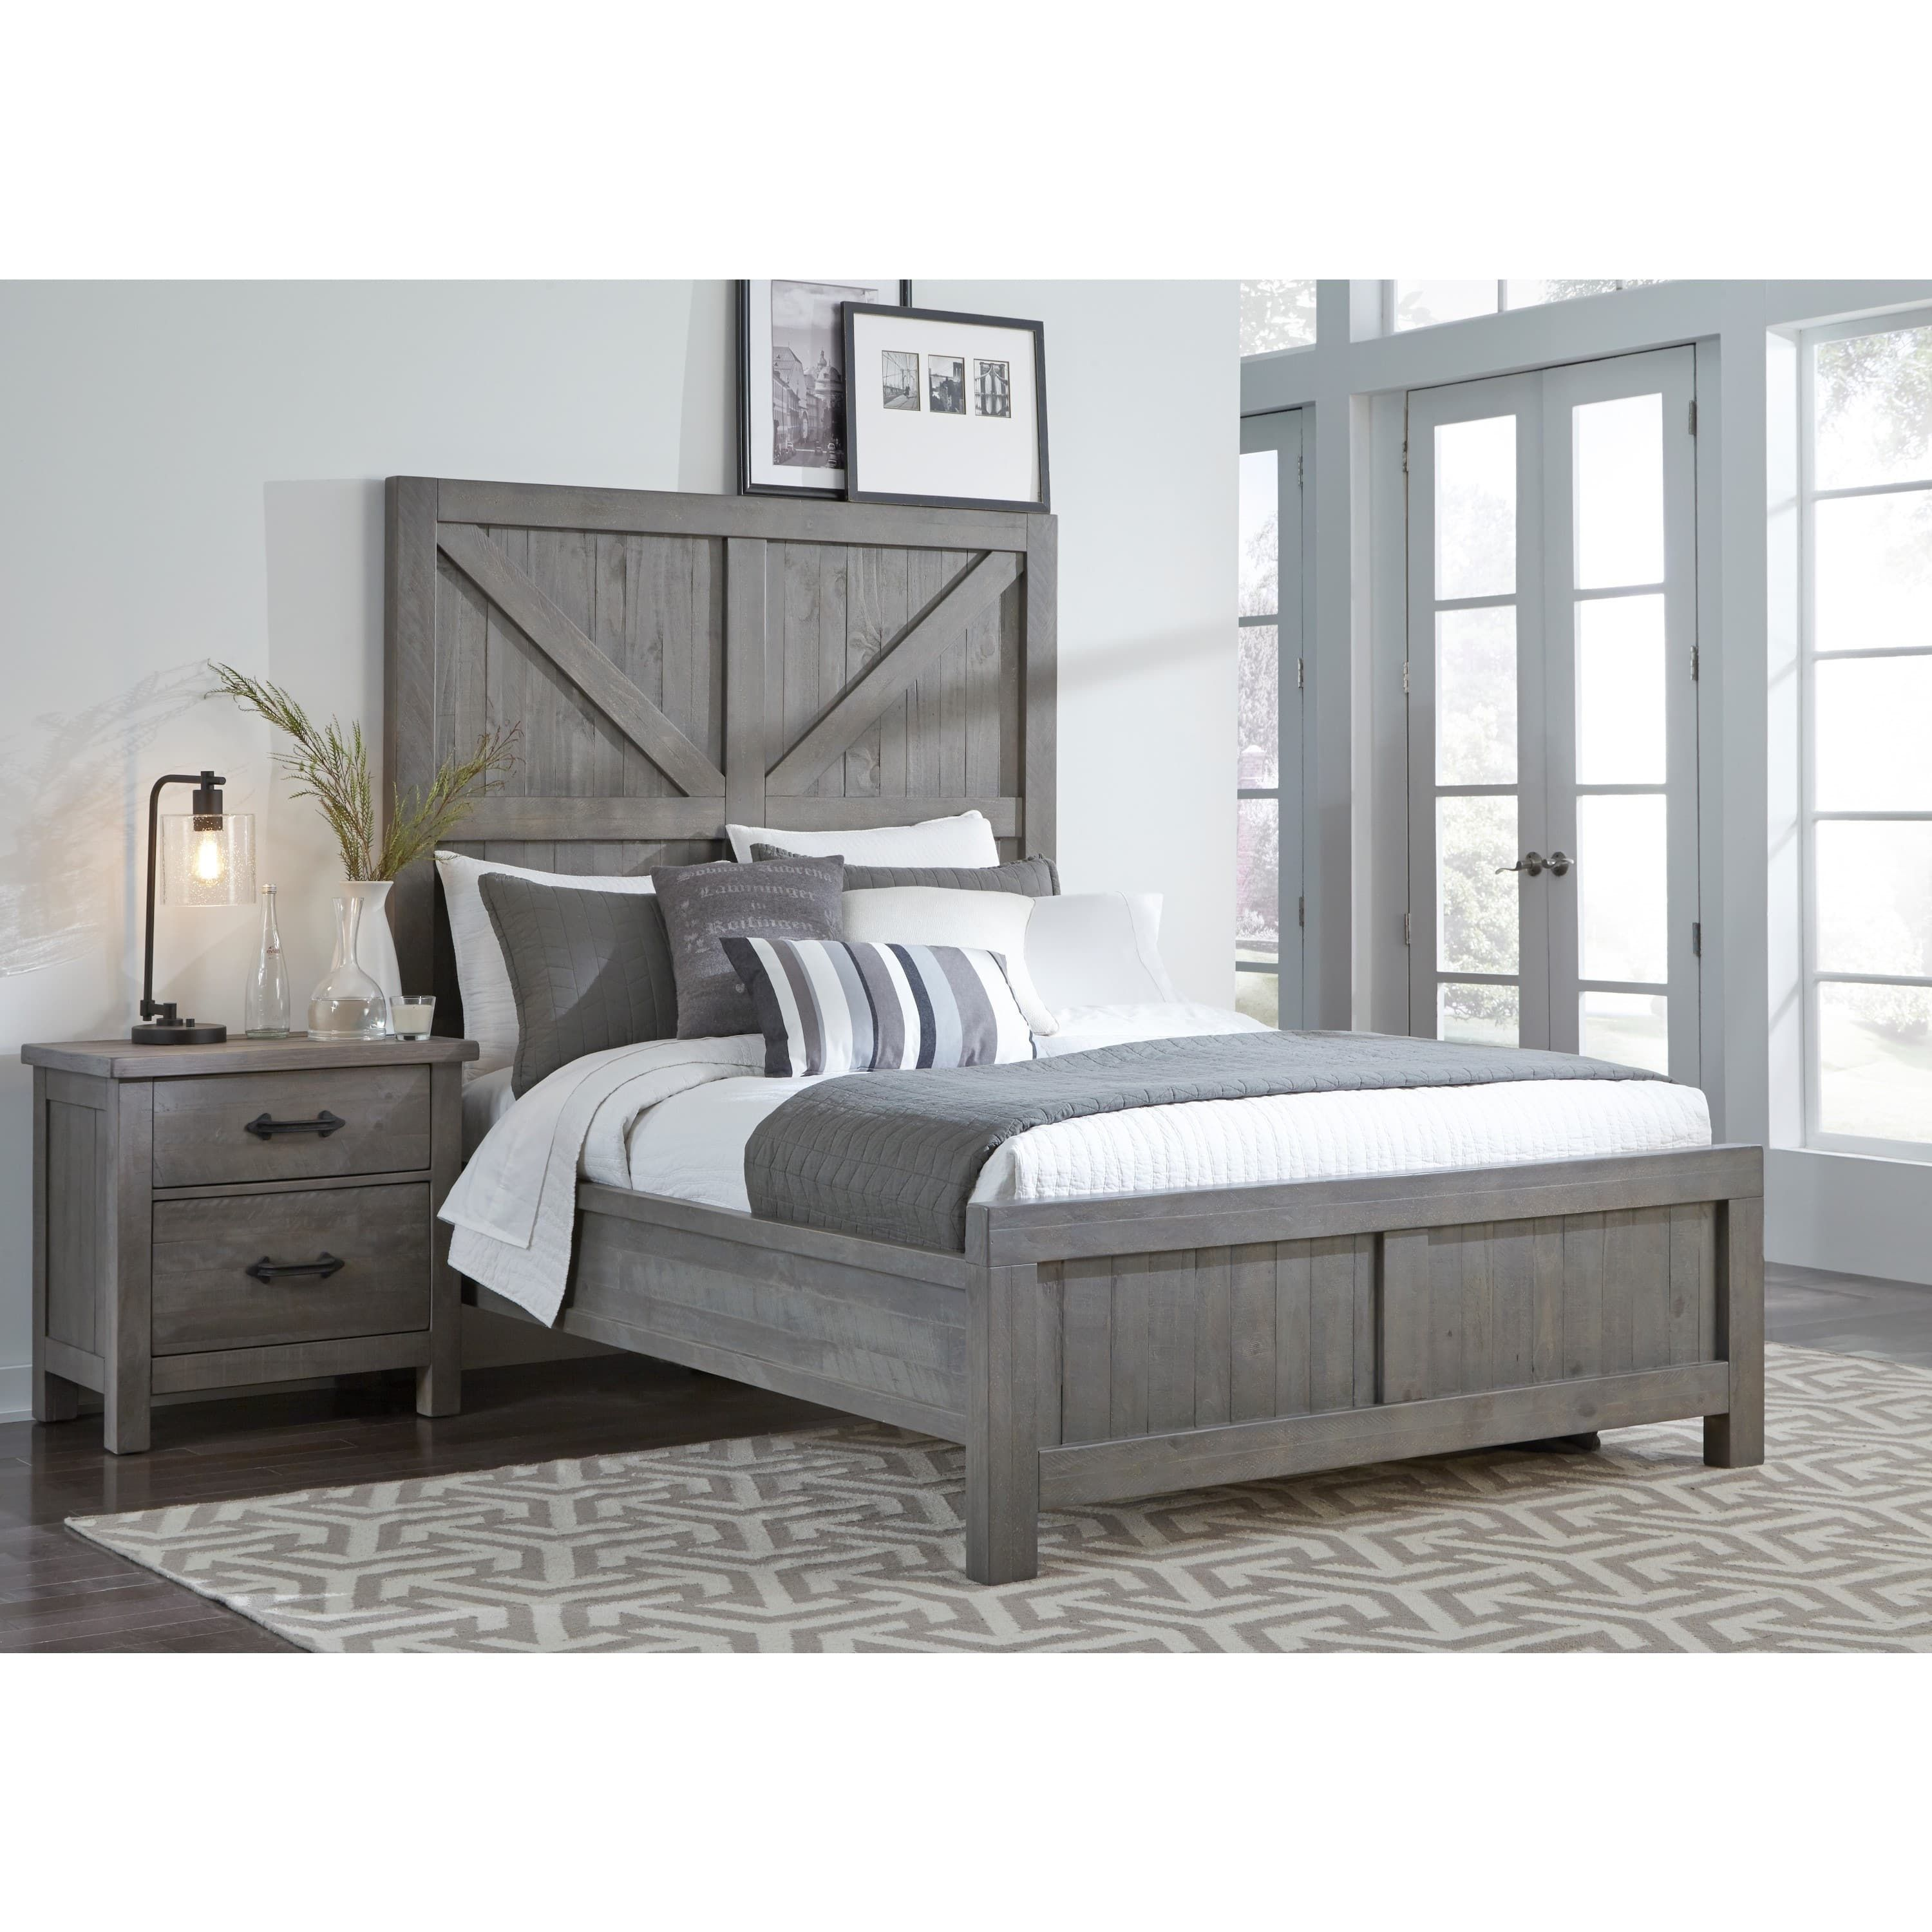 Modus Austin Barn Door Panel Bed In Rustic Gray California King Grey With Images Panel Bed Modus Furniture Bedroom Set